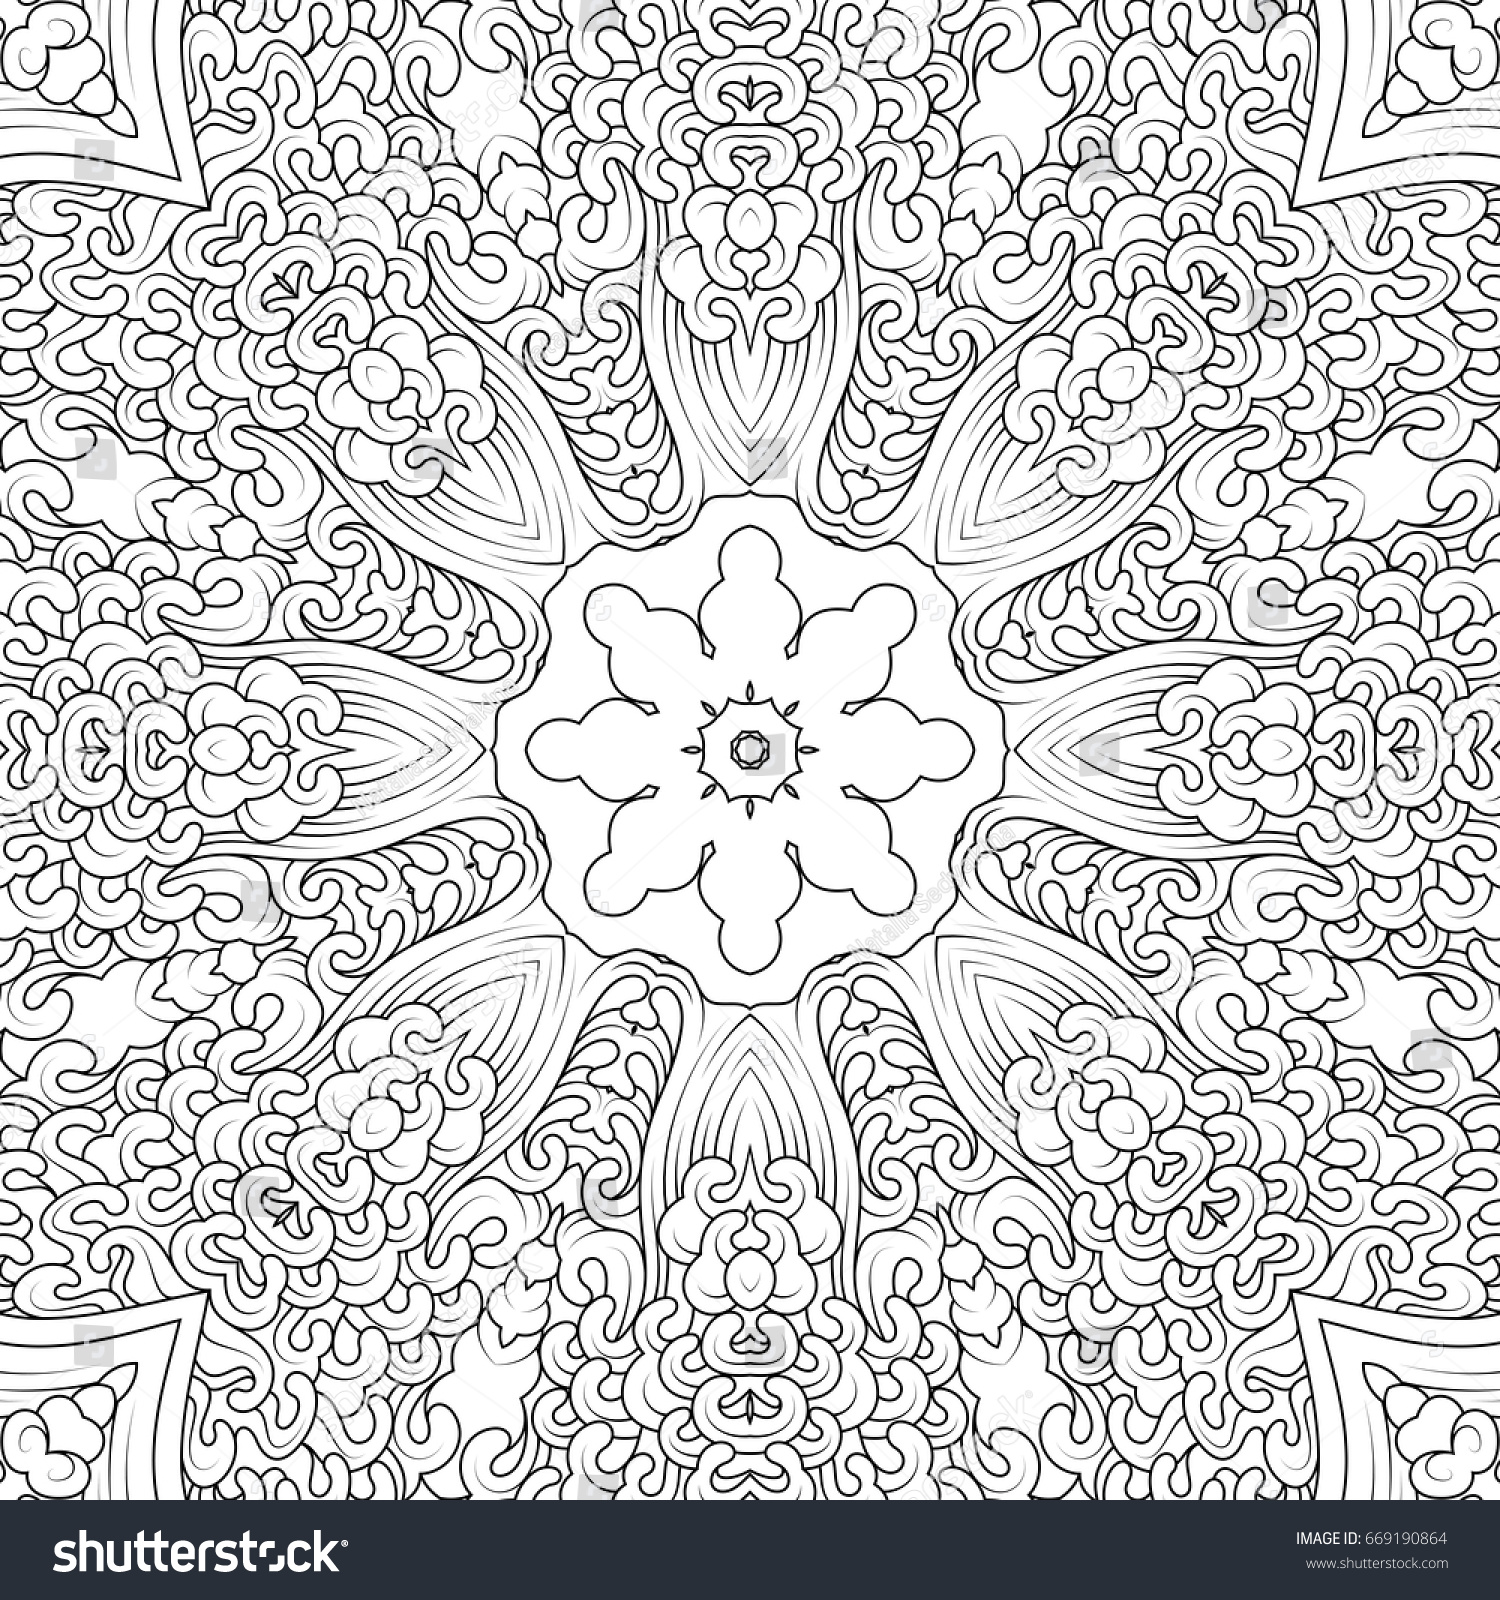 Monochrome Contour Mandala In Tibetan Iconography Style Adult Coloring Books Design Vector Illustration